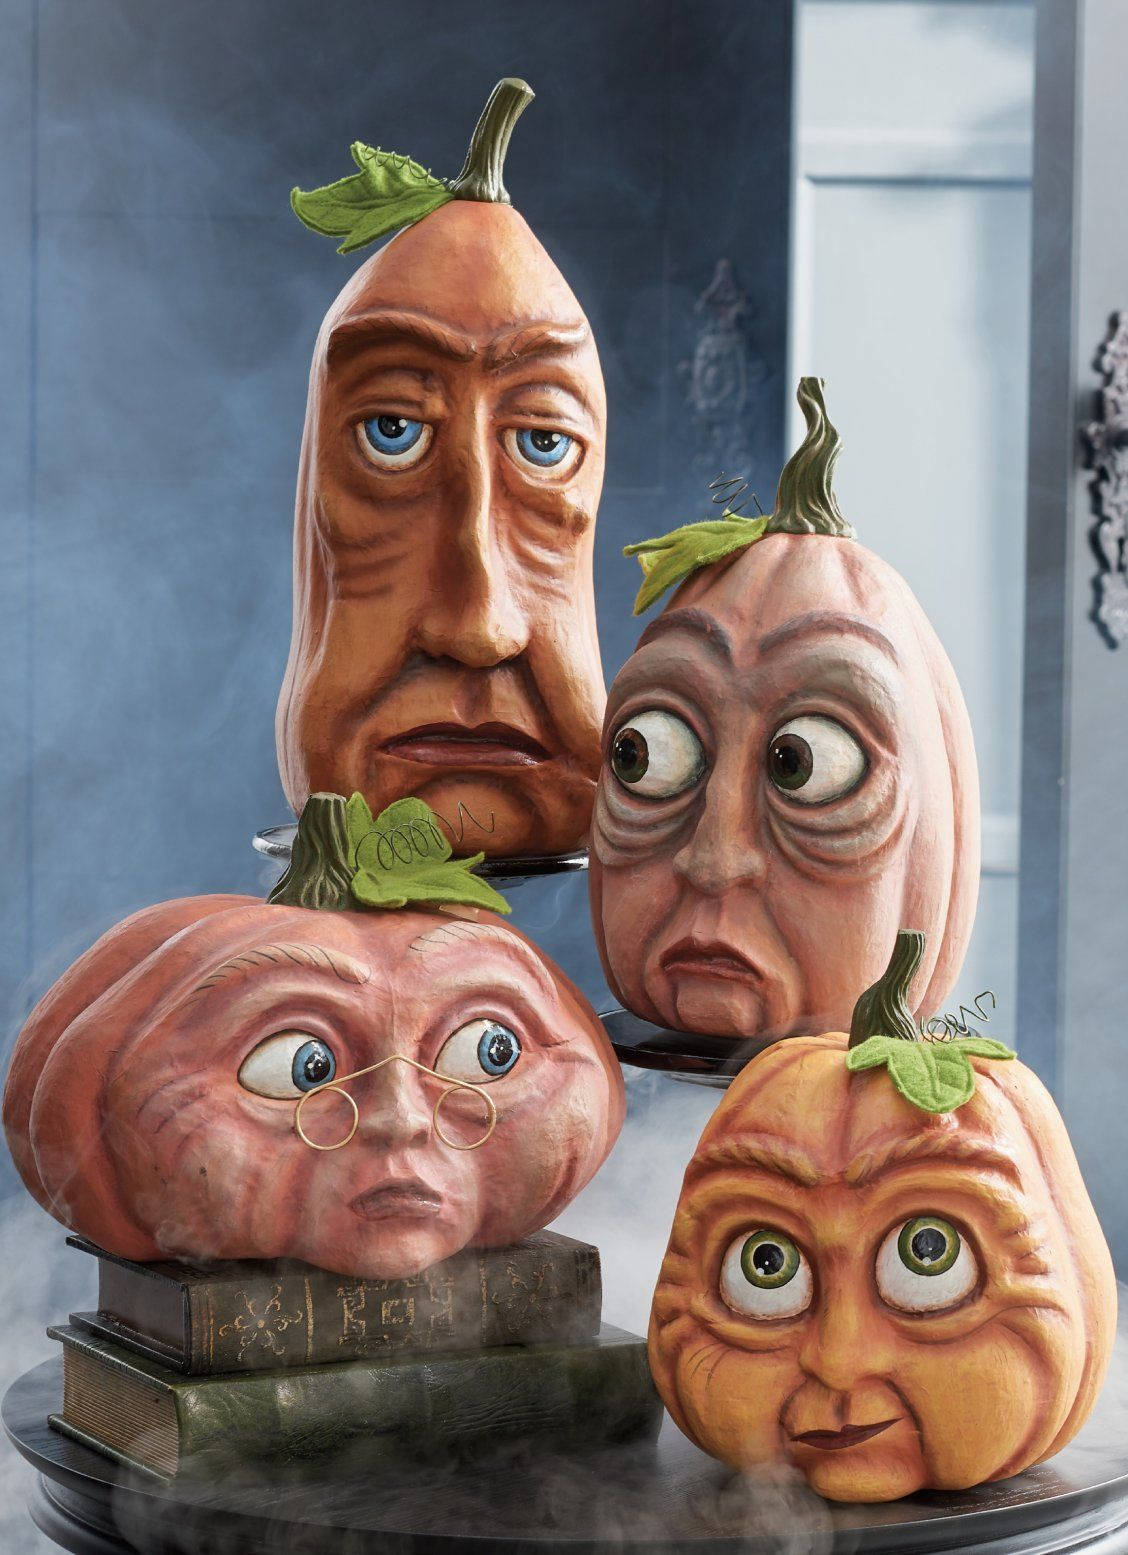 All Eyes Are On Our Incredibly Expressive Halloween Pumpkins These Odd Fellows Were Conceived And Created Right H Halloween Fun Halloween Crafts Halloween Art